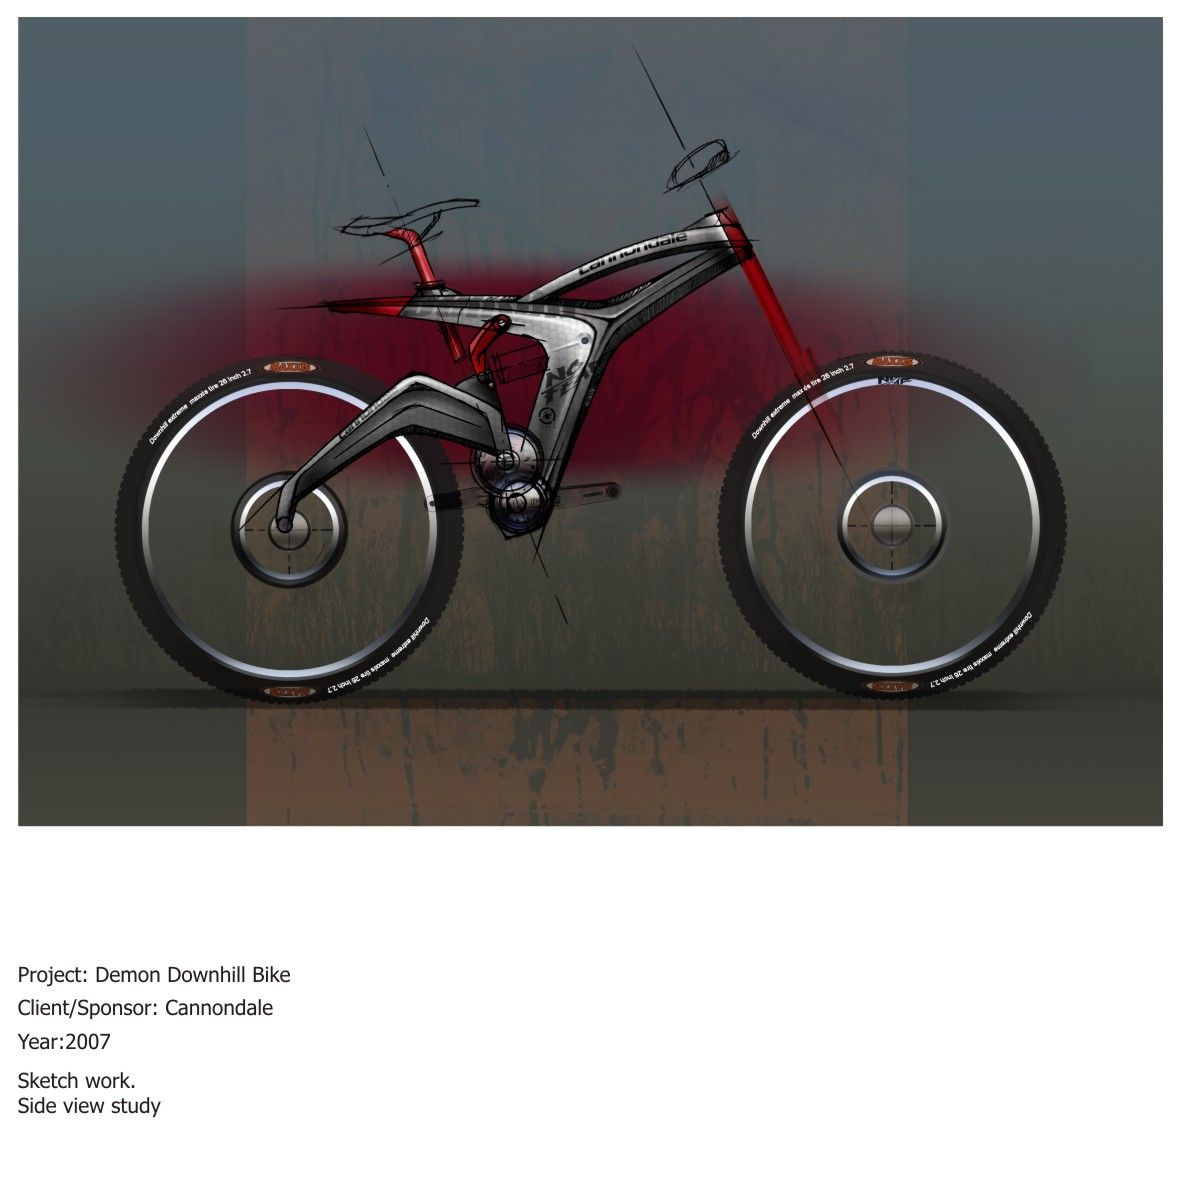 Demon Downhill Bike Sketches 1 Bicycle Design Bicycle Sketch